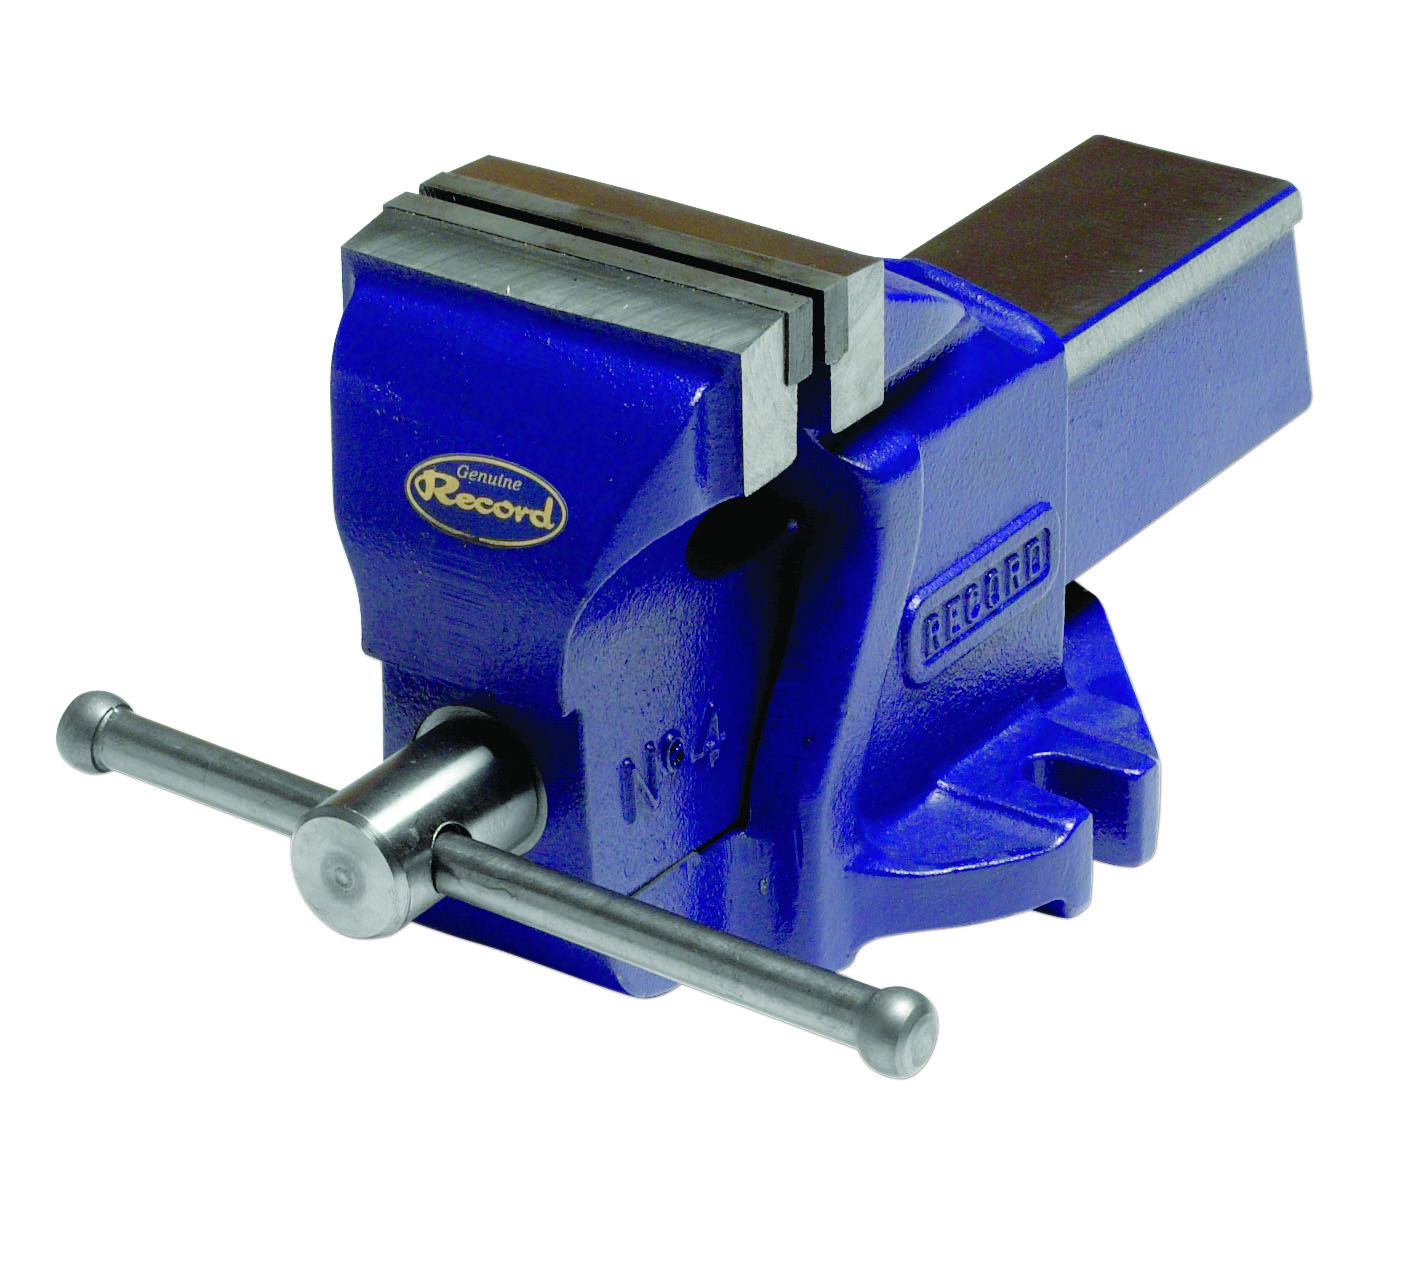 IRWIN T5 - Heavy Duty Mechanics Vice 5-inch